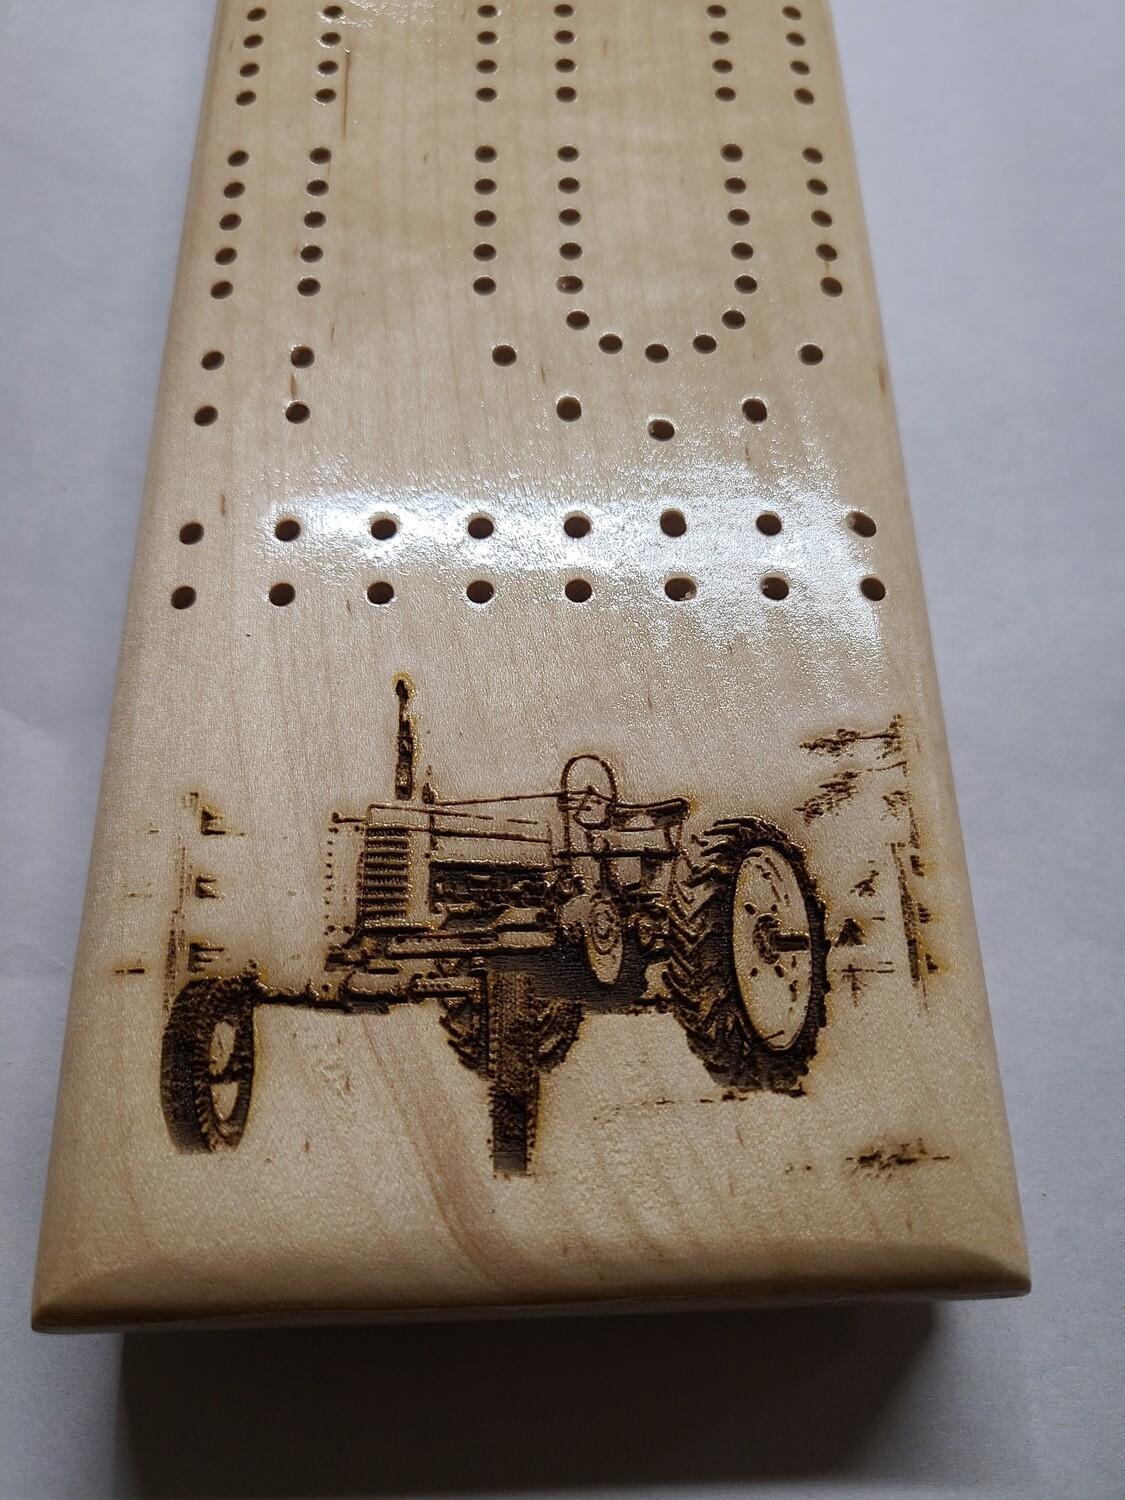 2 Track Cribbage Board w/tractor engraving